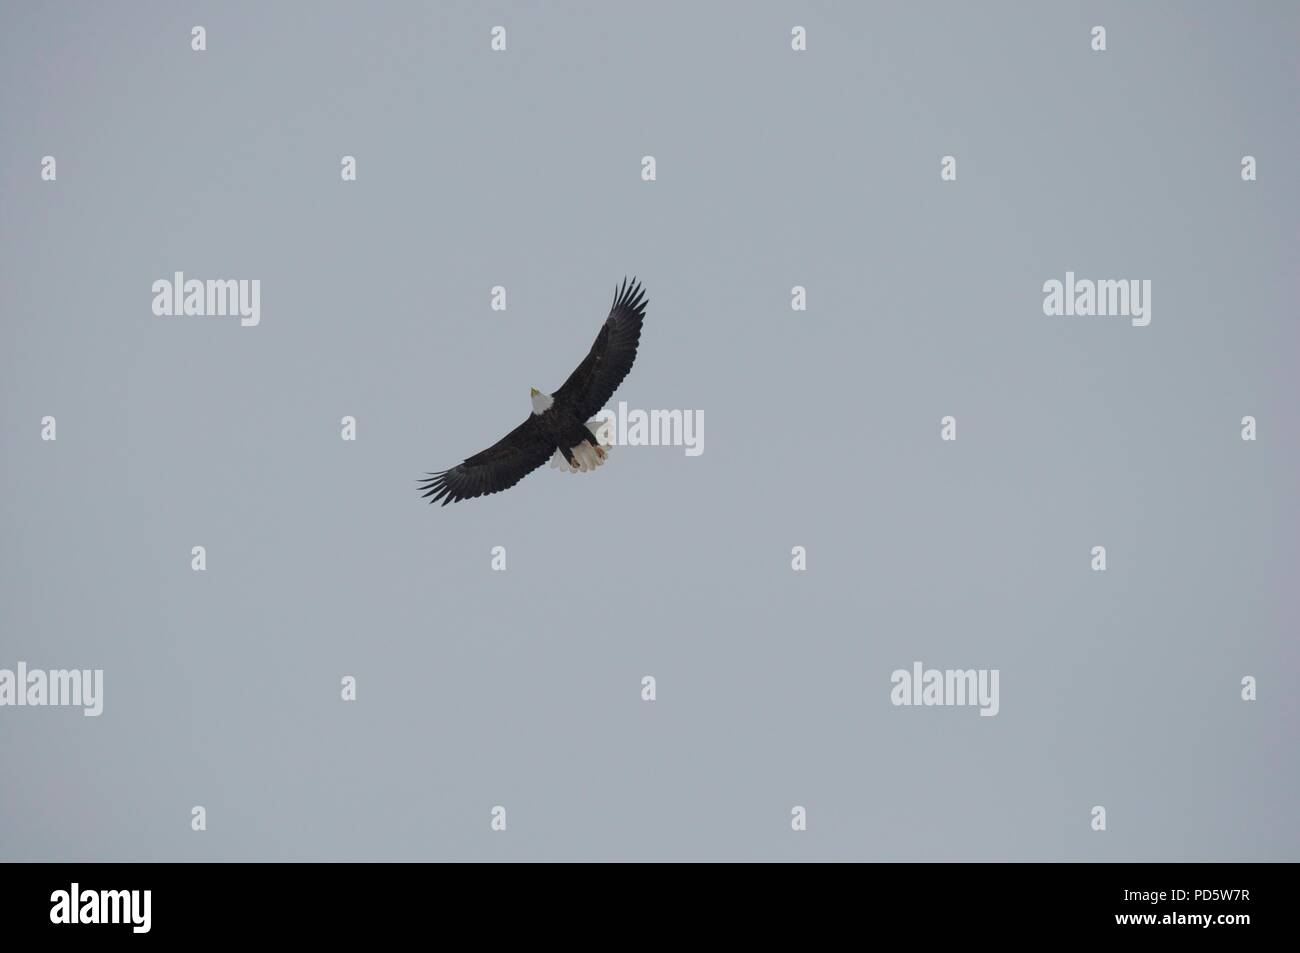 Bald Eagle flying seen from below - Stock Image